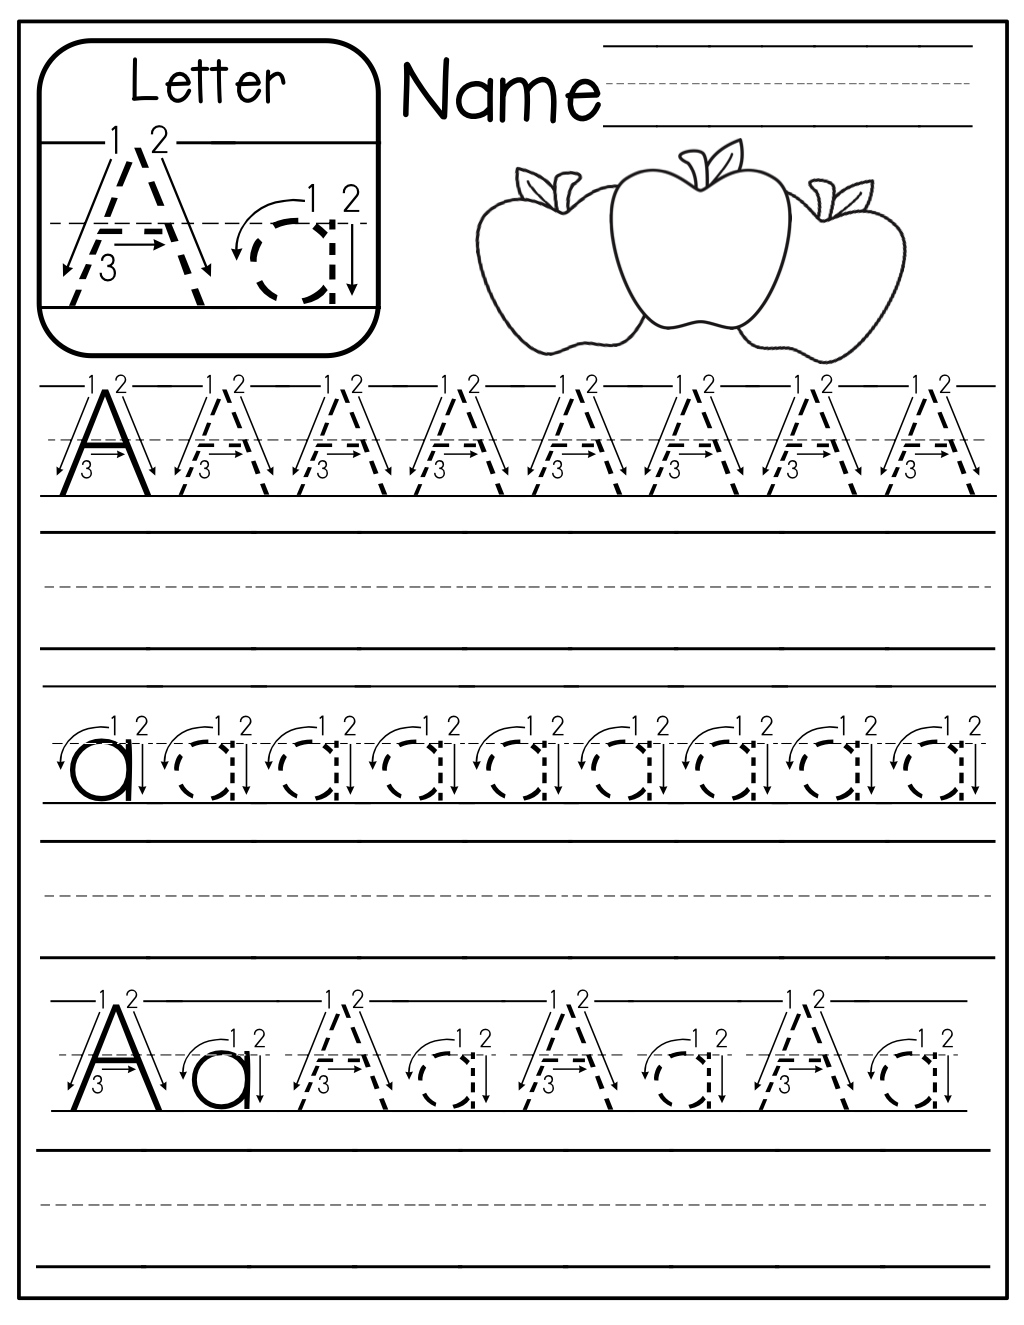 Free Handwriting Practice Pages Just Place In Sheet Protectors And Use A Dry Erase Marker To